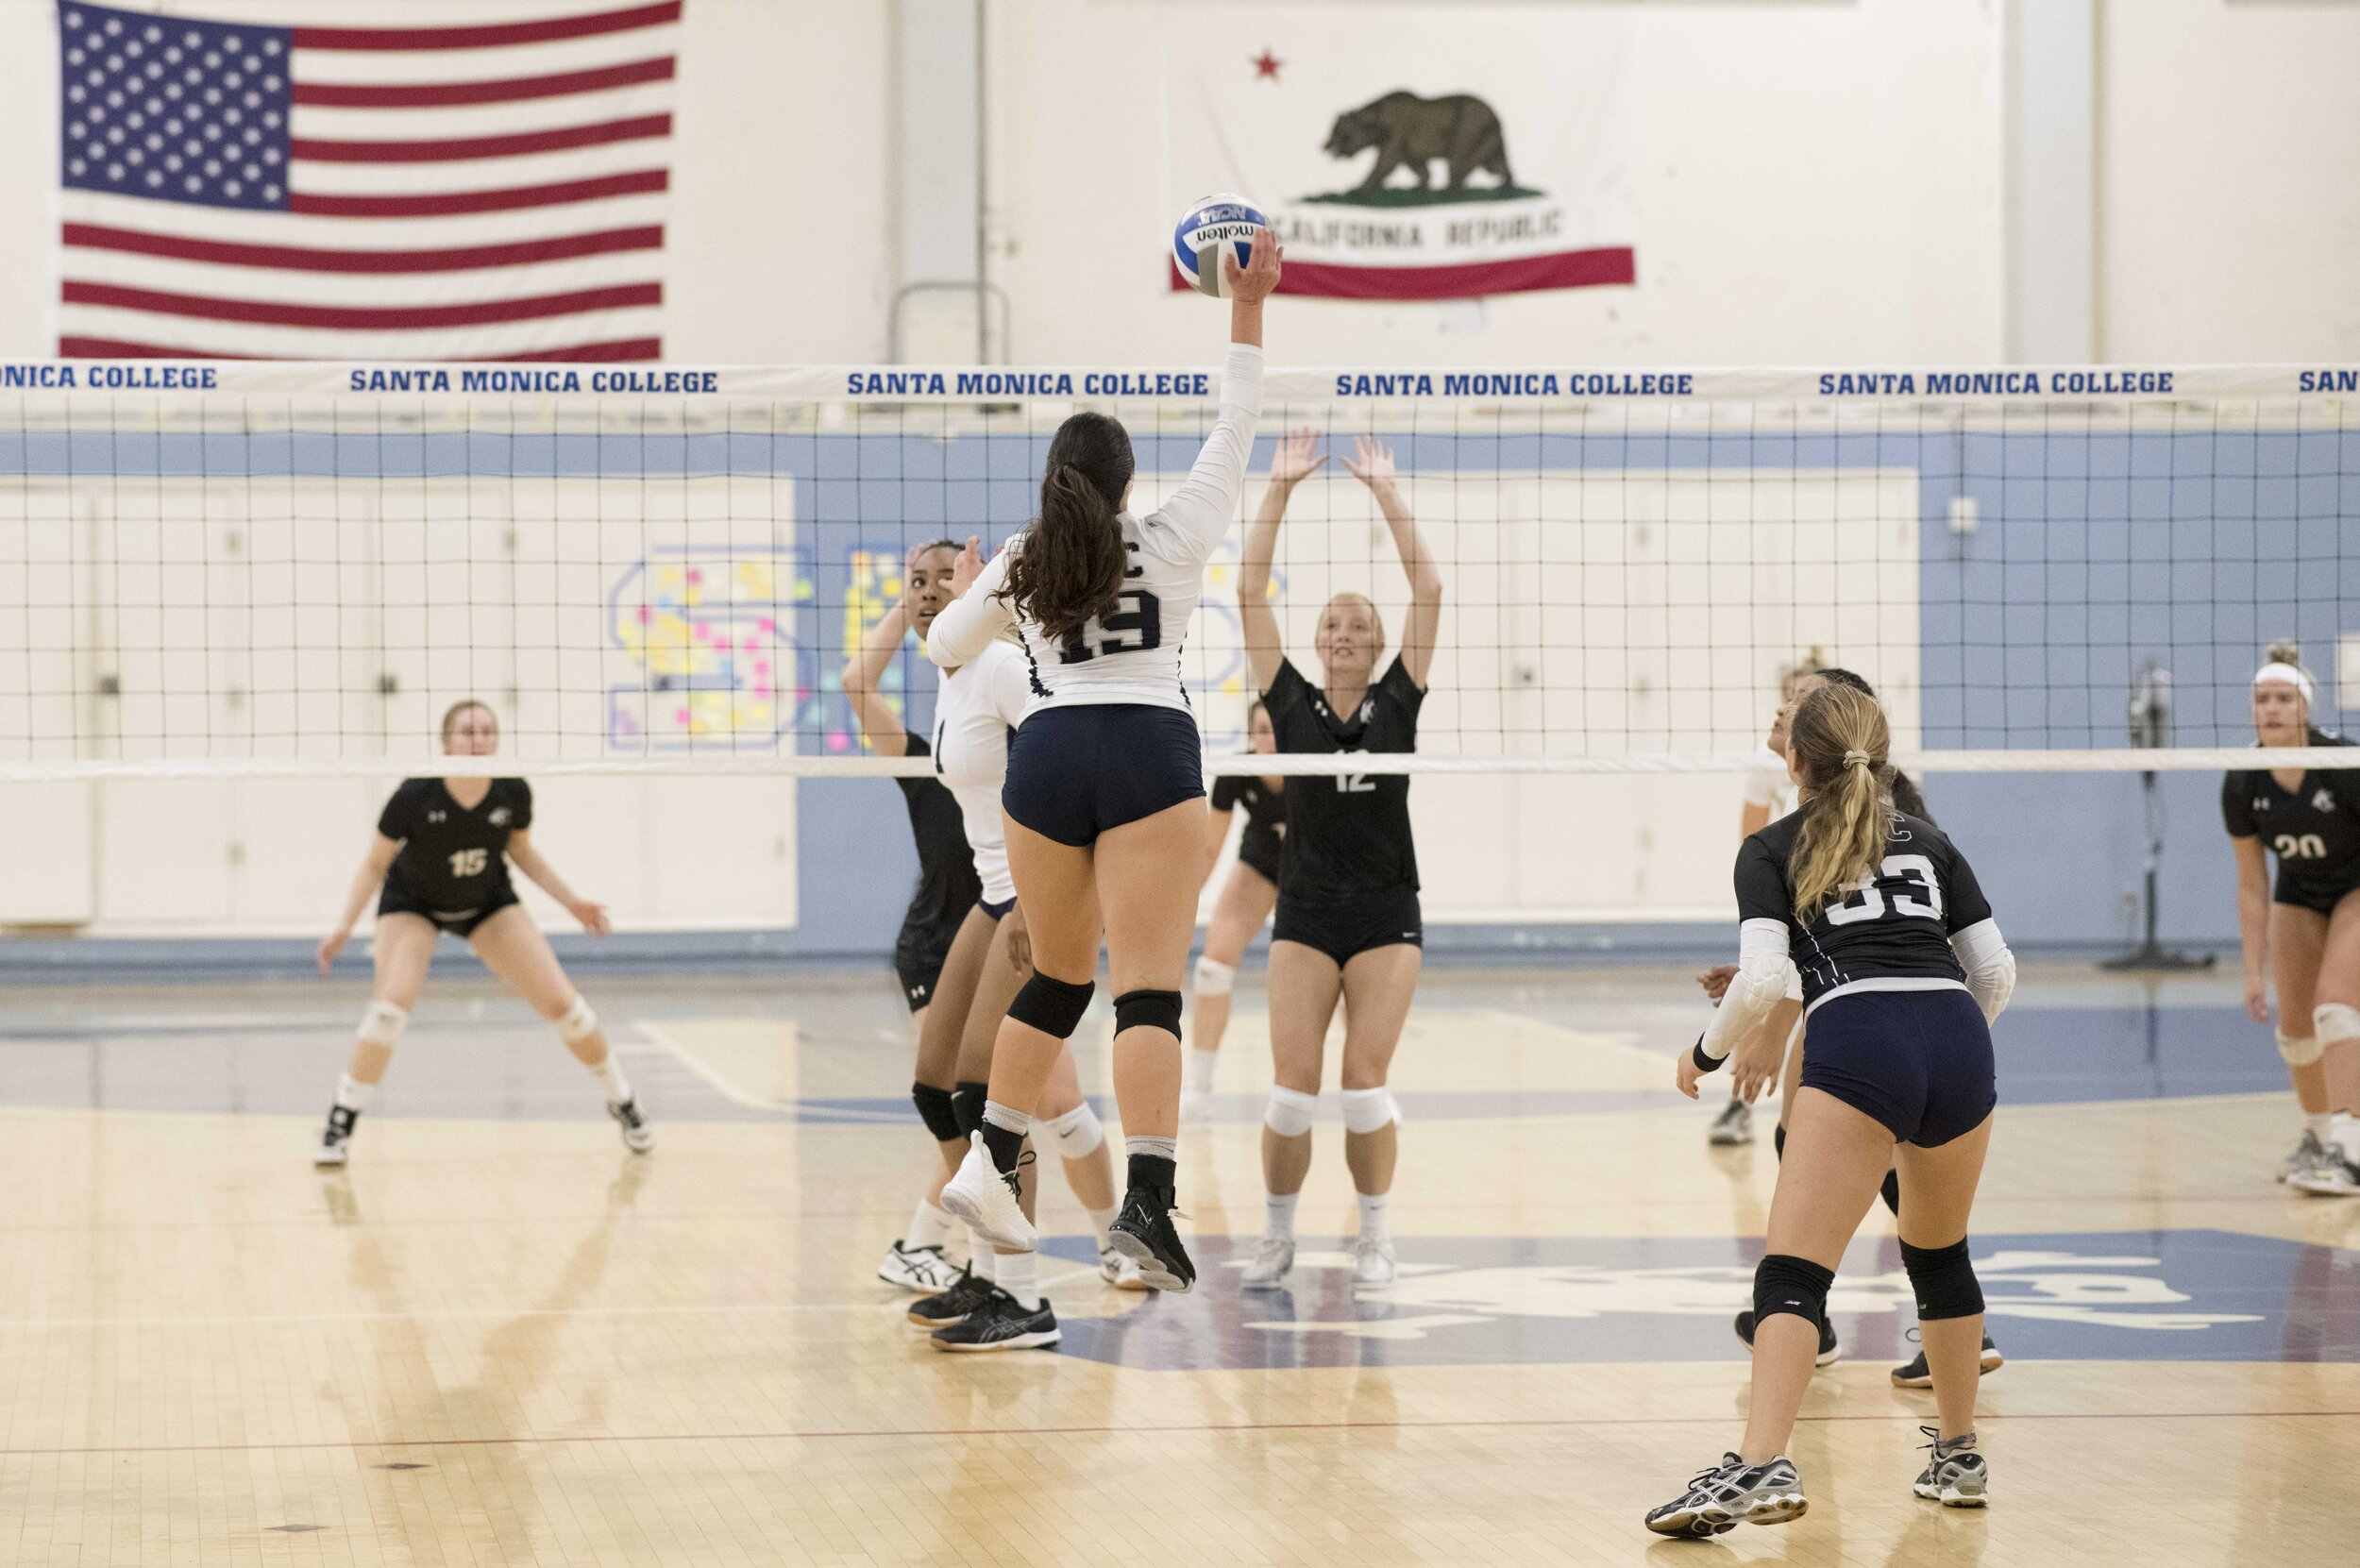 #19 Madison Reiner scores a powerful kill for the Corsair's. (Photo by Kevin Tidmore/The Corsair)